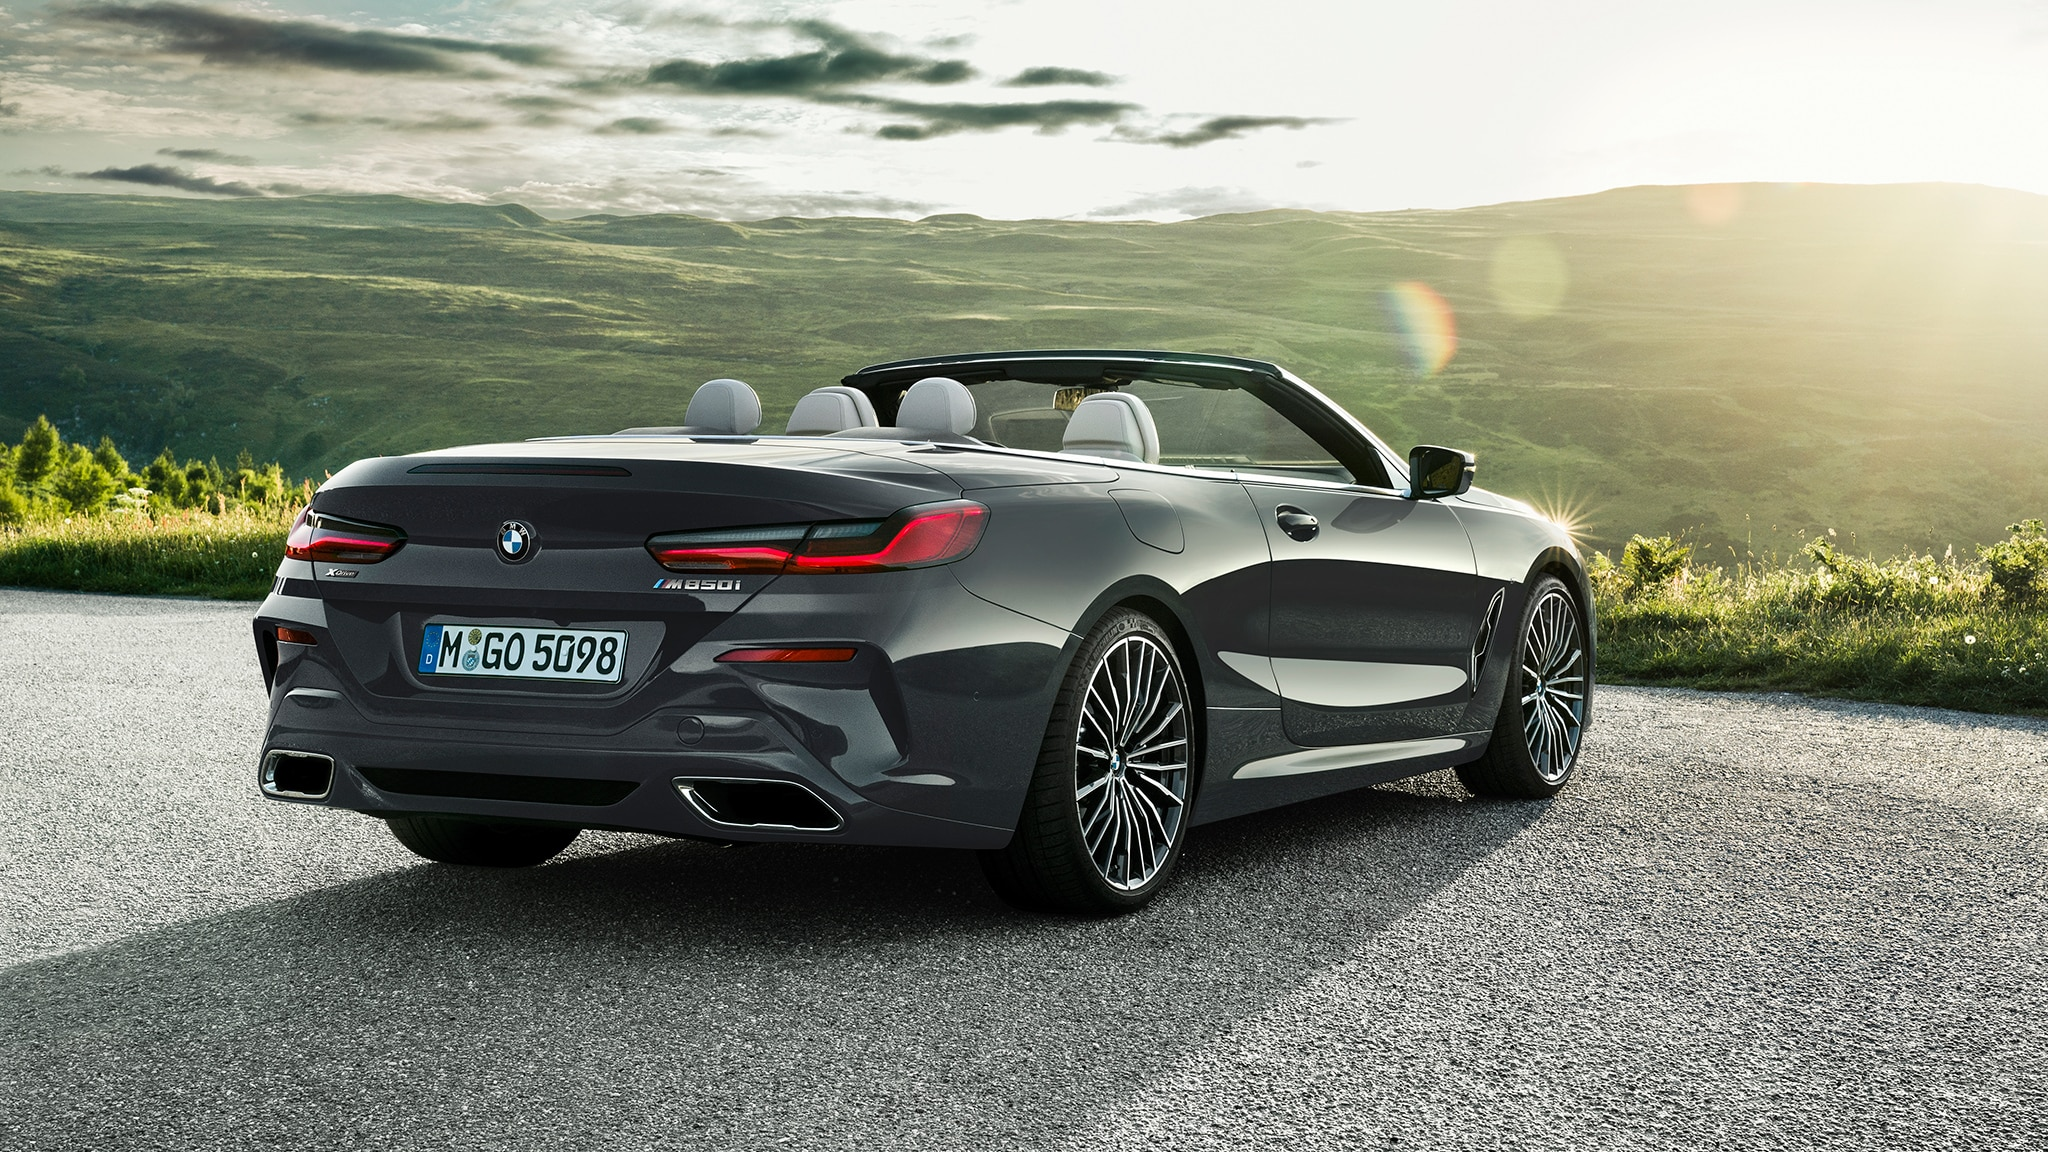 2019 BMW M850i Convertible Rear Side View Sun Spots